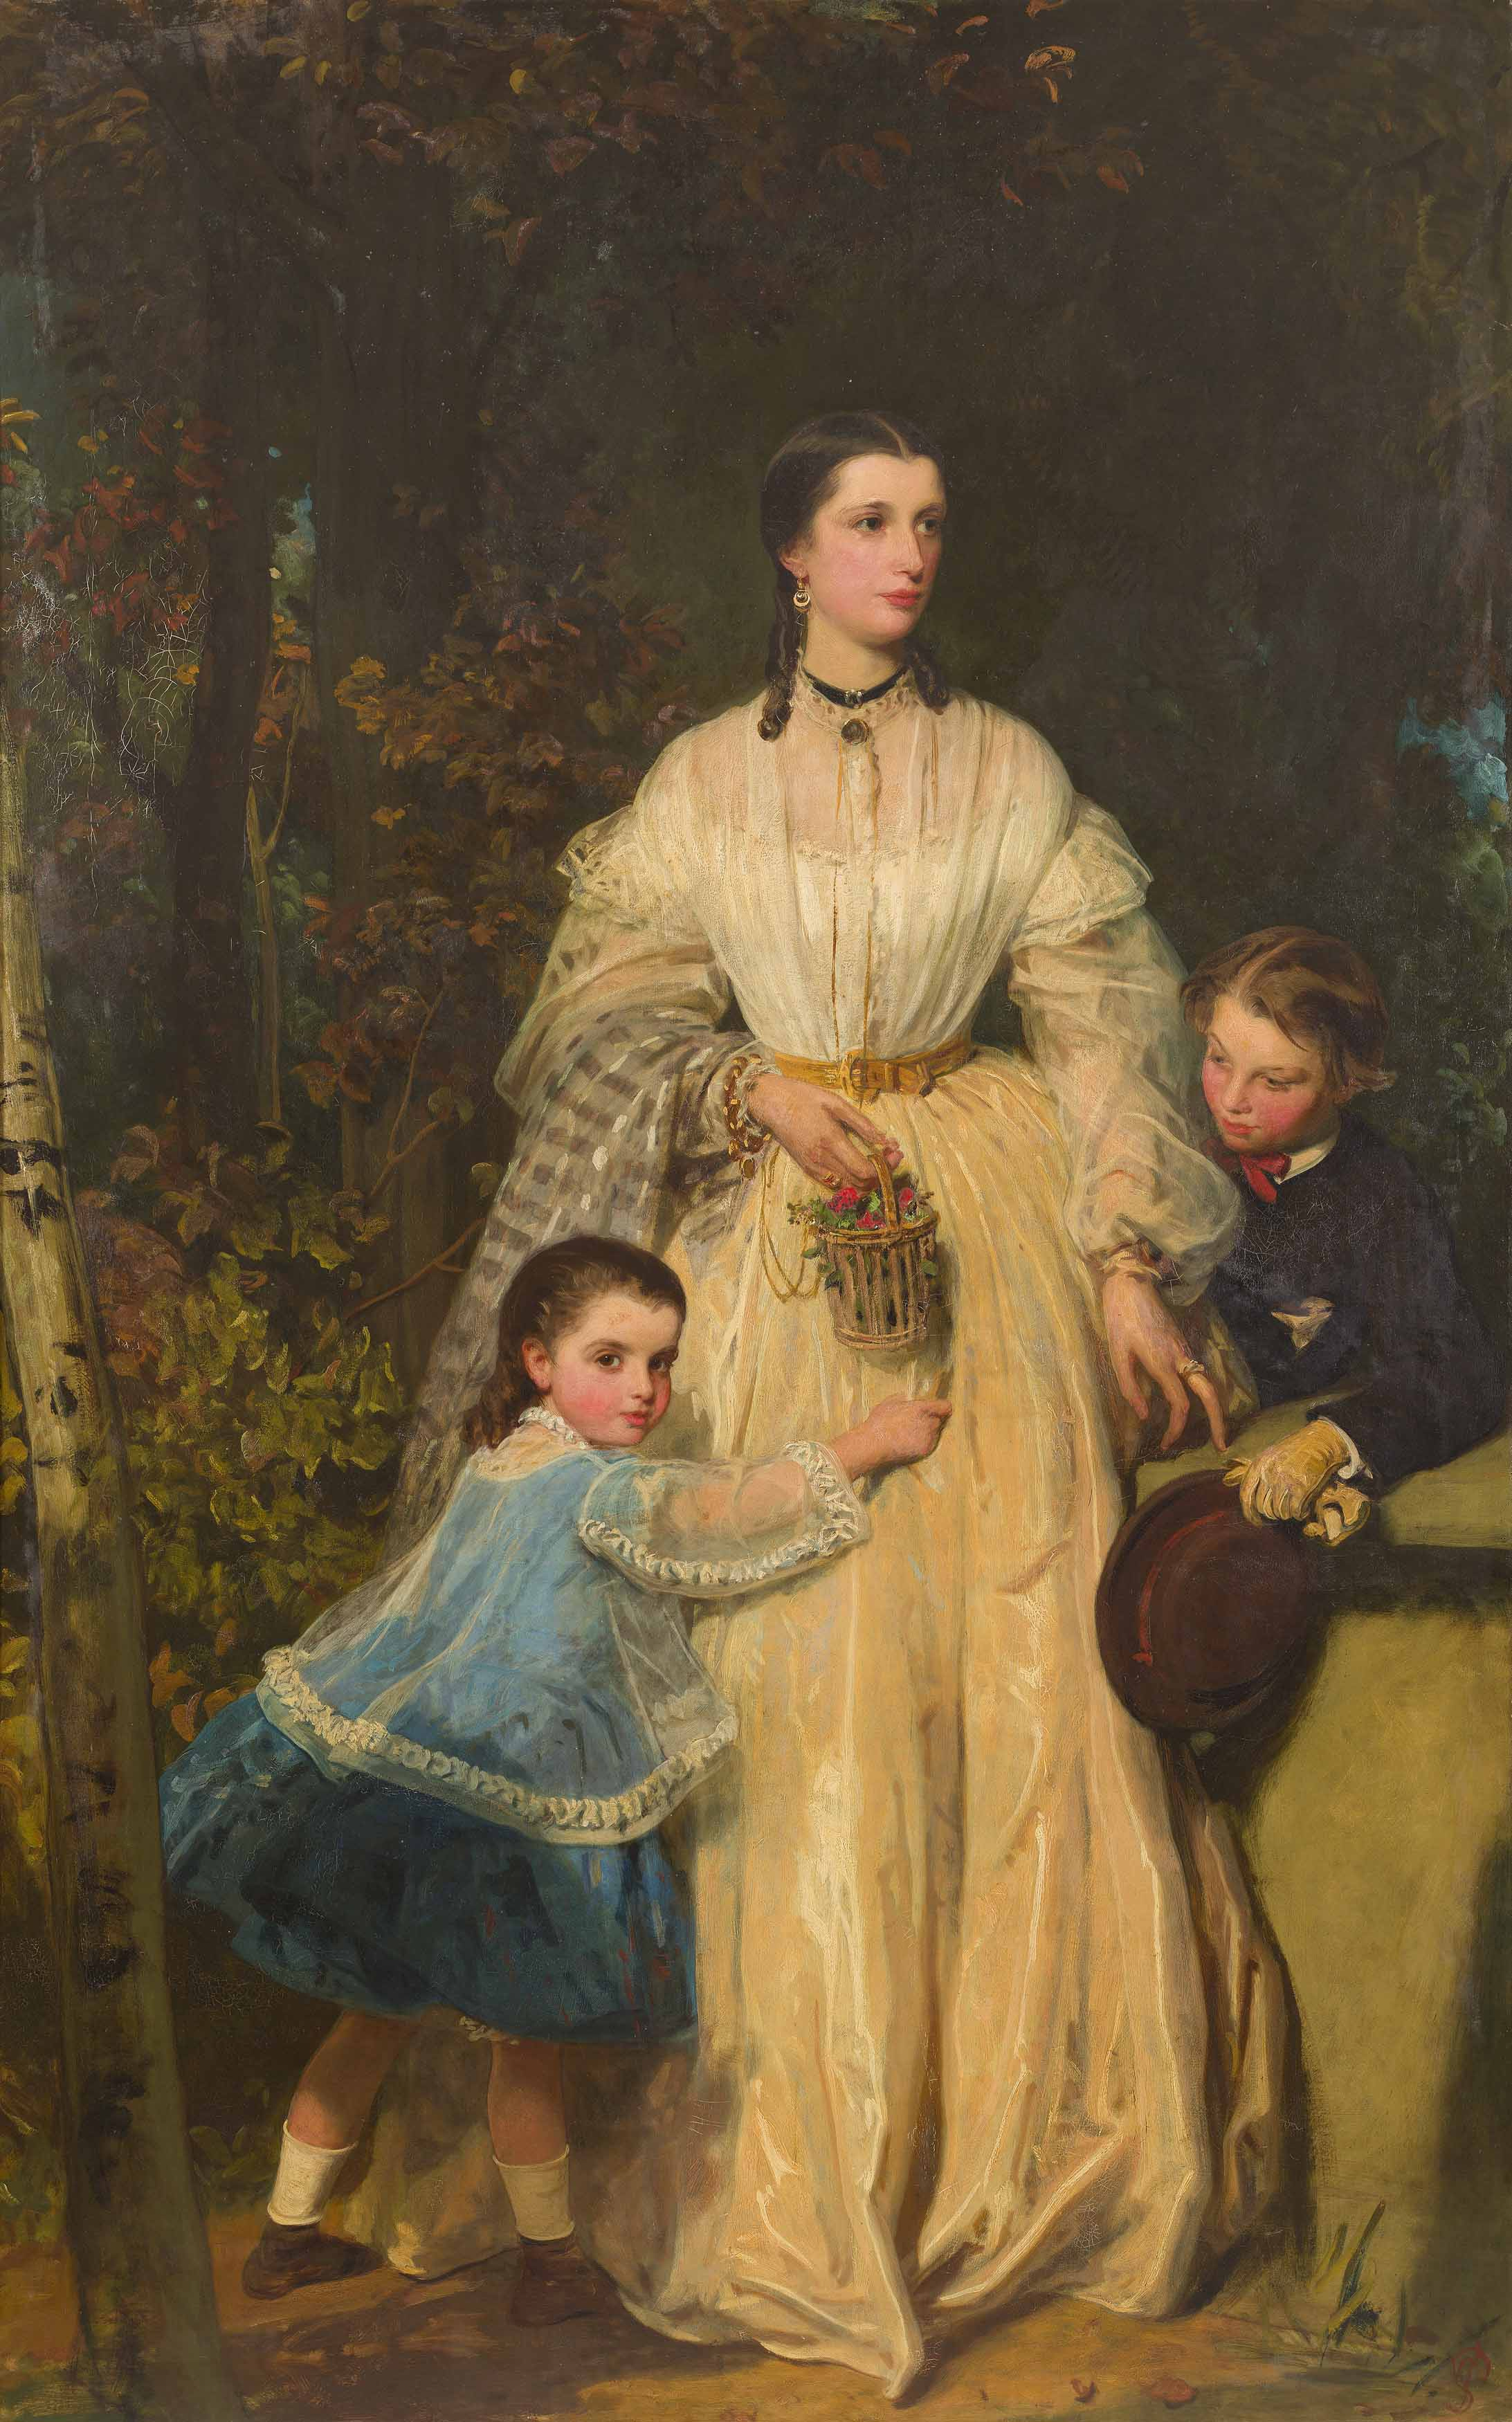 James Sant | Full-length Portrait of Mary Fothergill and her children Richard and Mary